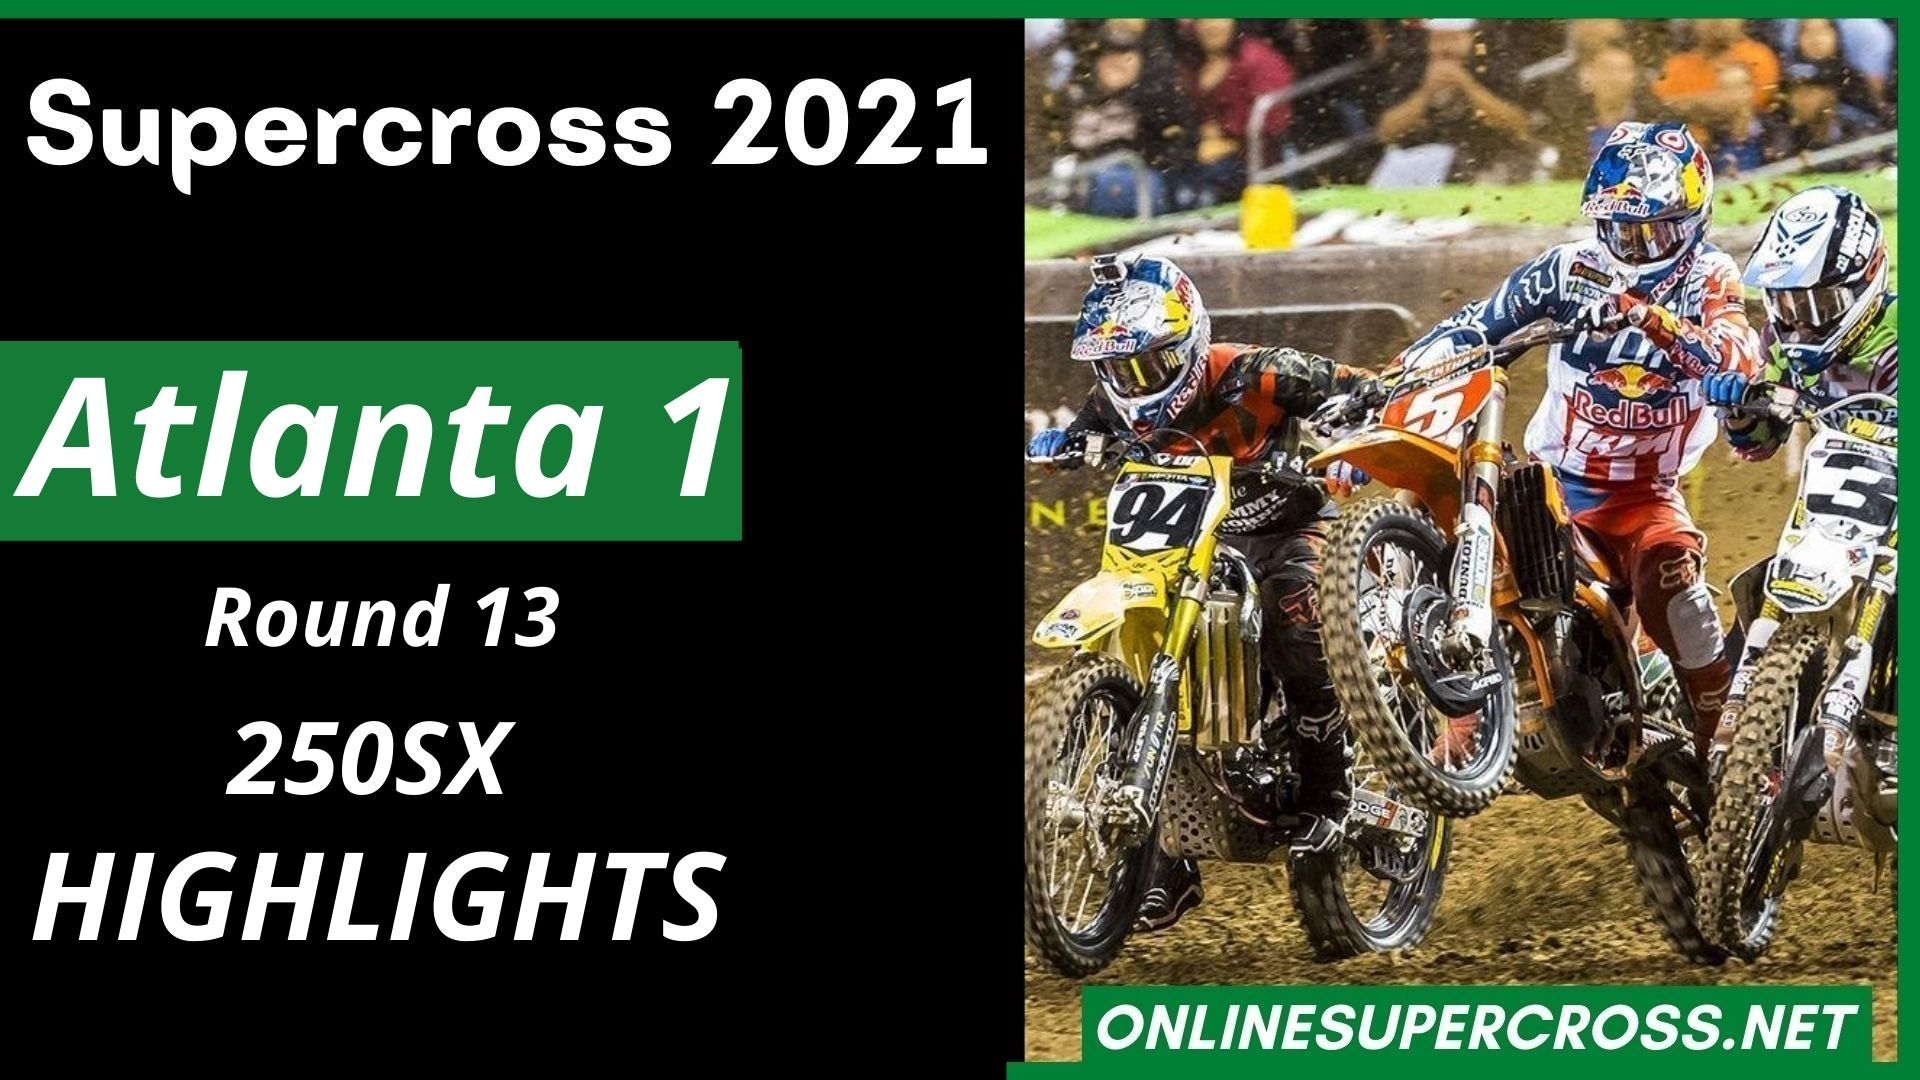 Atlanta 1 Round 13 Supercross 250SX Highlights 2021